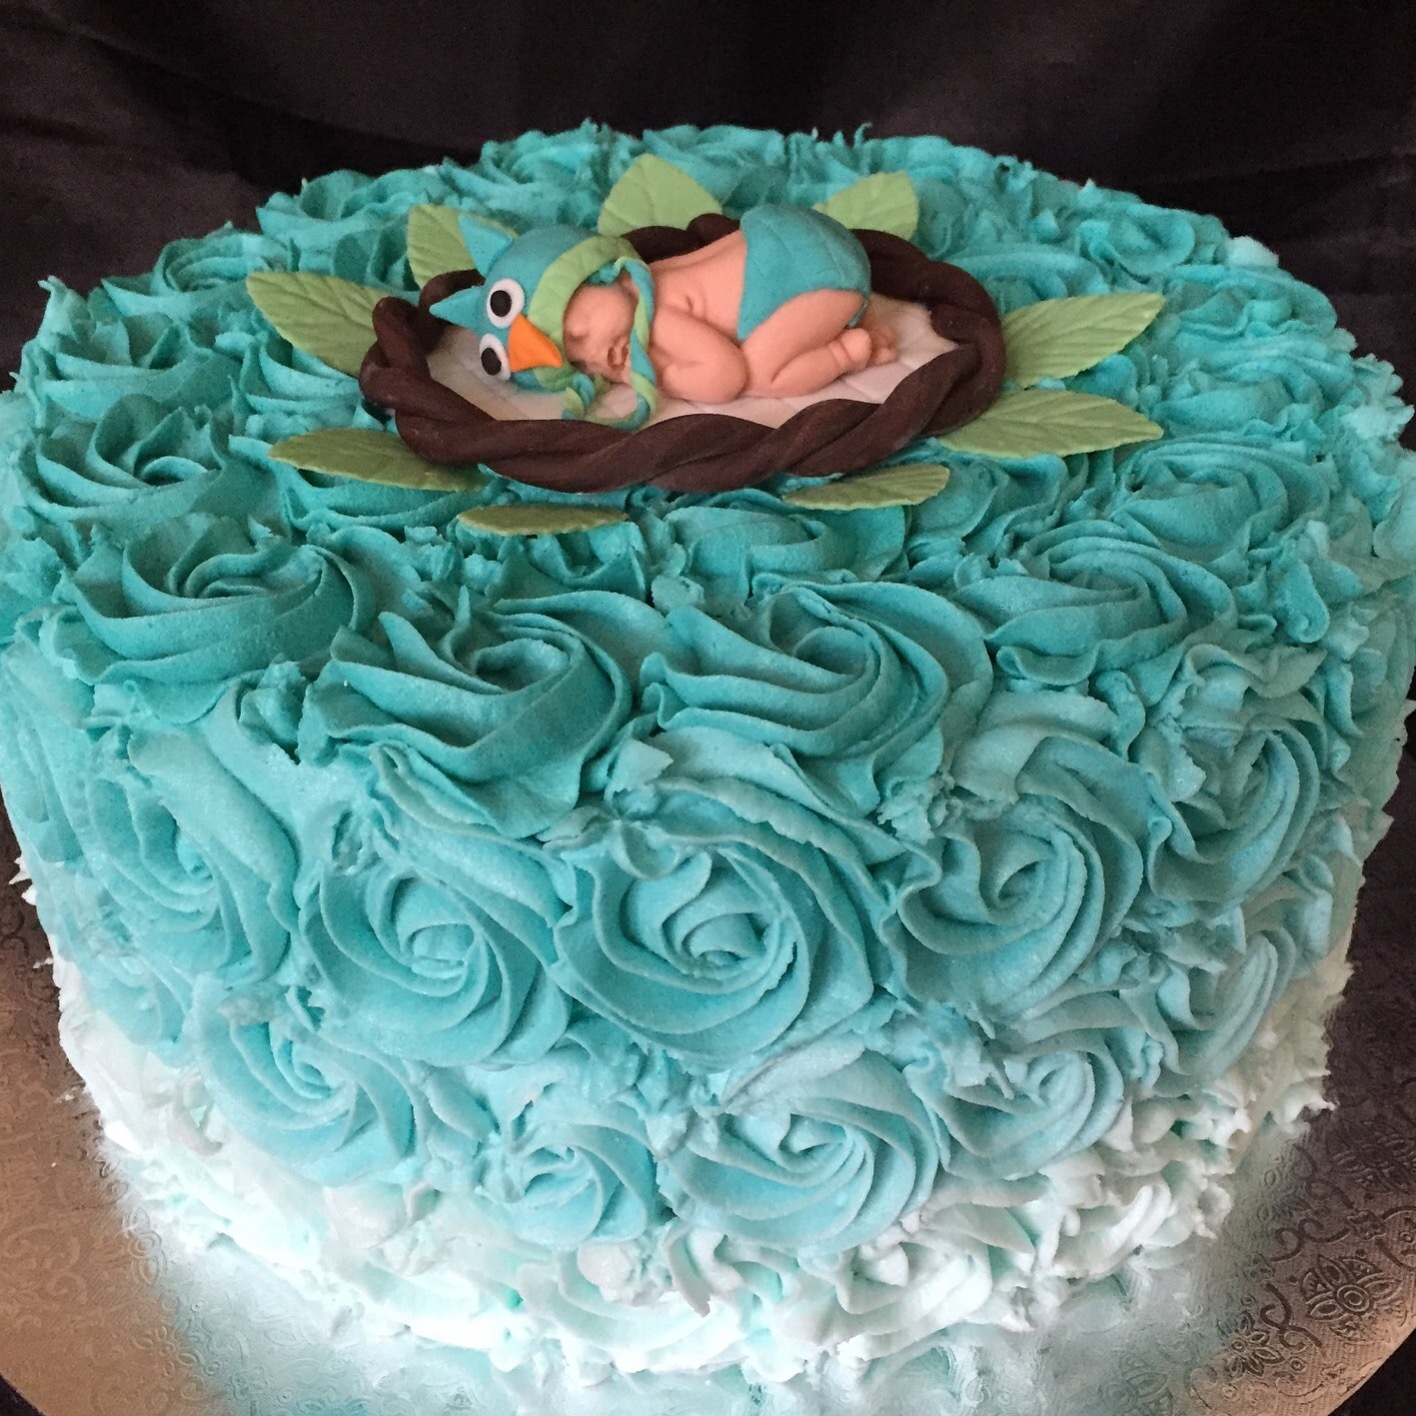 Sleeping baby teal ombre rosettes shower